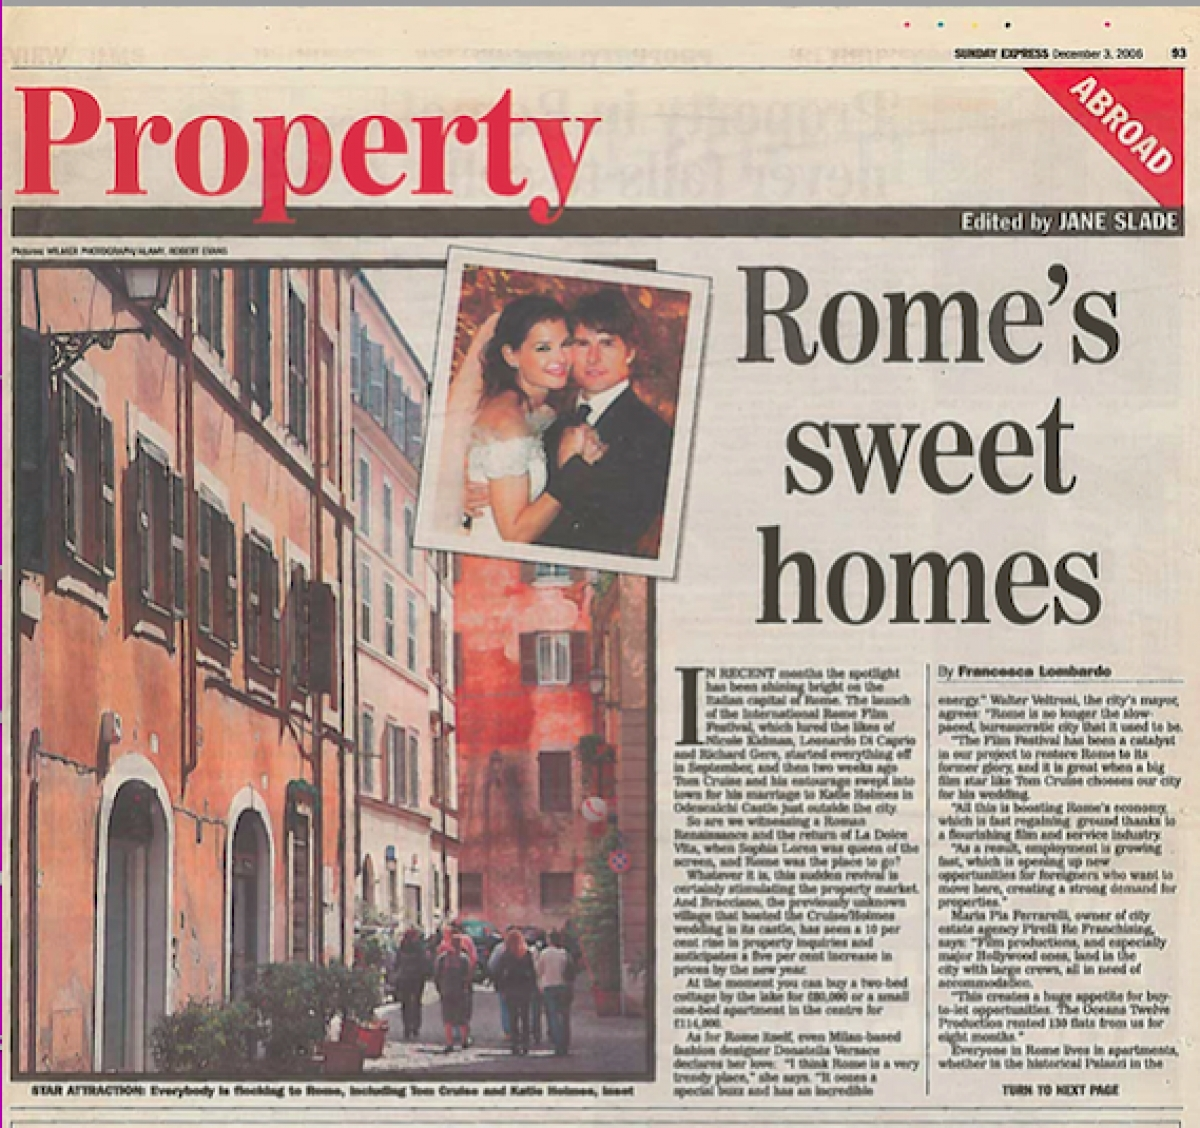 Sunday Express, Property, Francesca Lombardo